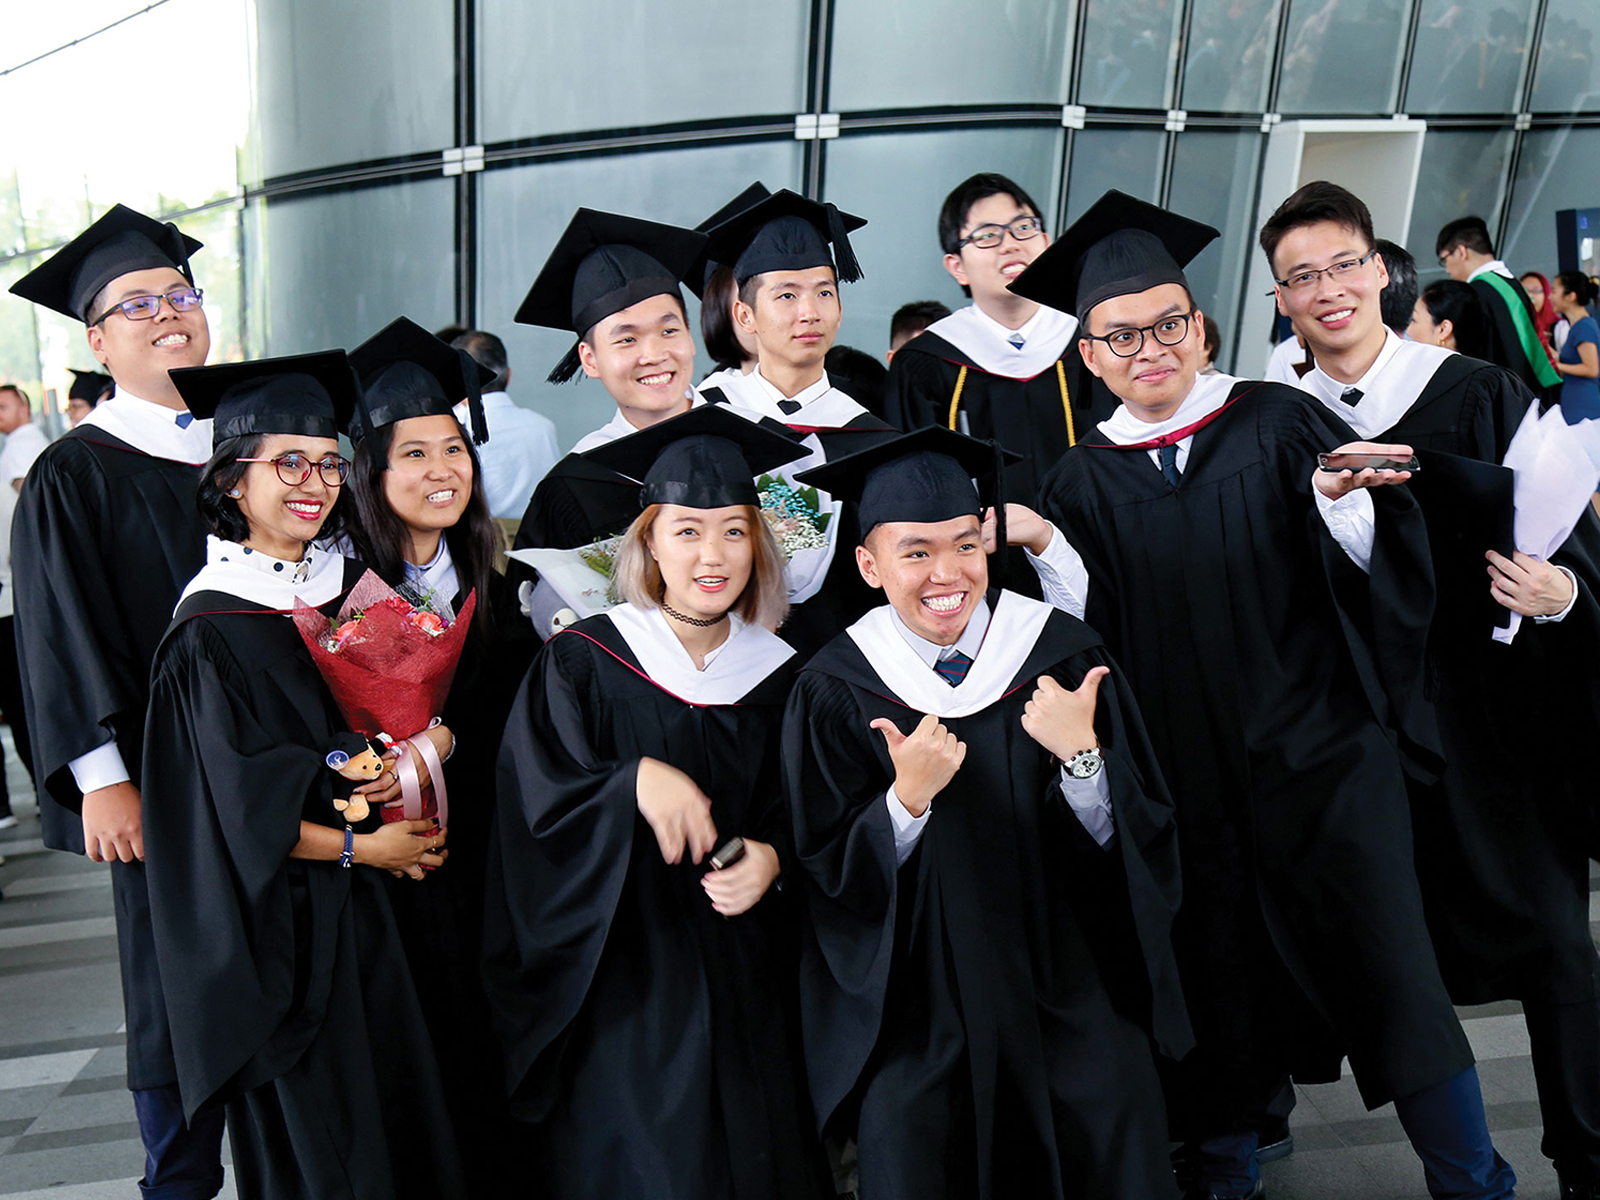 DigiPen (Singapore) graduates are all smiles at the 2017 commencement ceremony